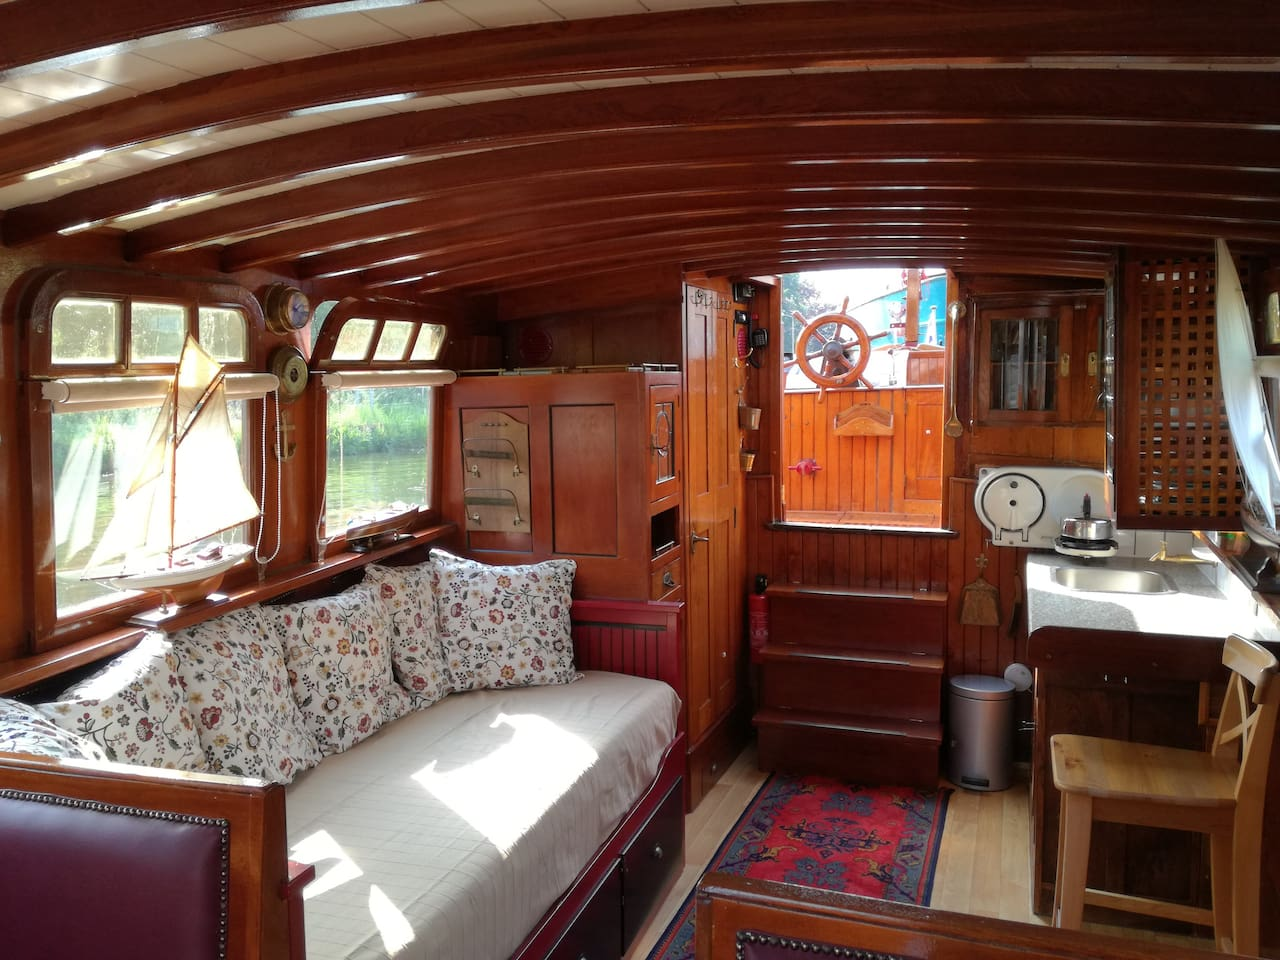 """Enjoy an overnight stay in a one-of-a-kind, historic boat named """"The Tromp."""" Built in 1938, The Tromp offers the old world, romantic charm of living on the water in the midst of history (www.salonbootdenhaag.nl)"""